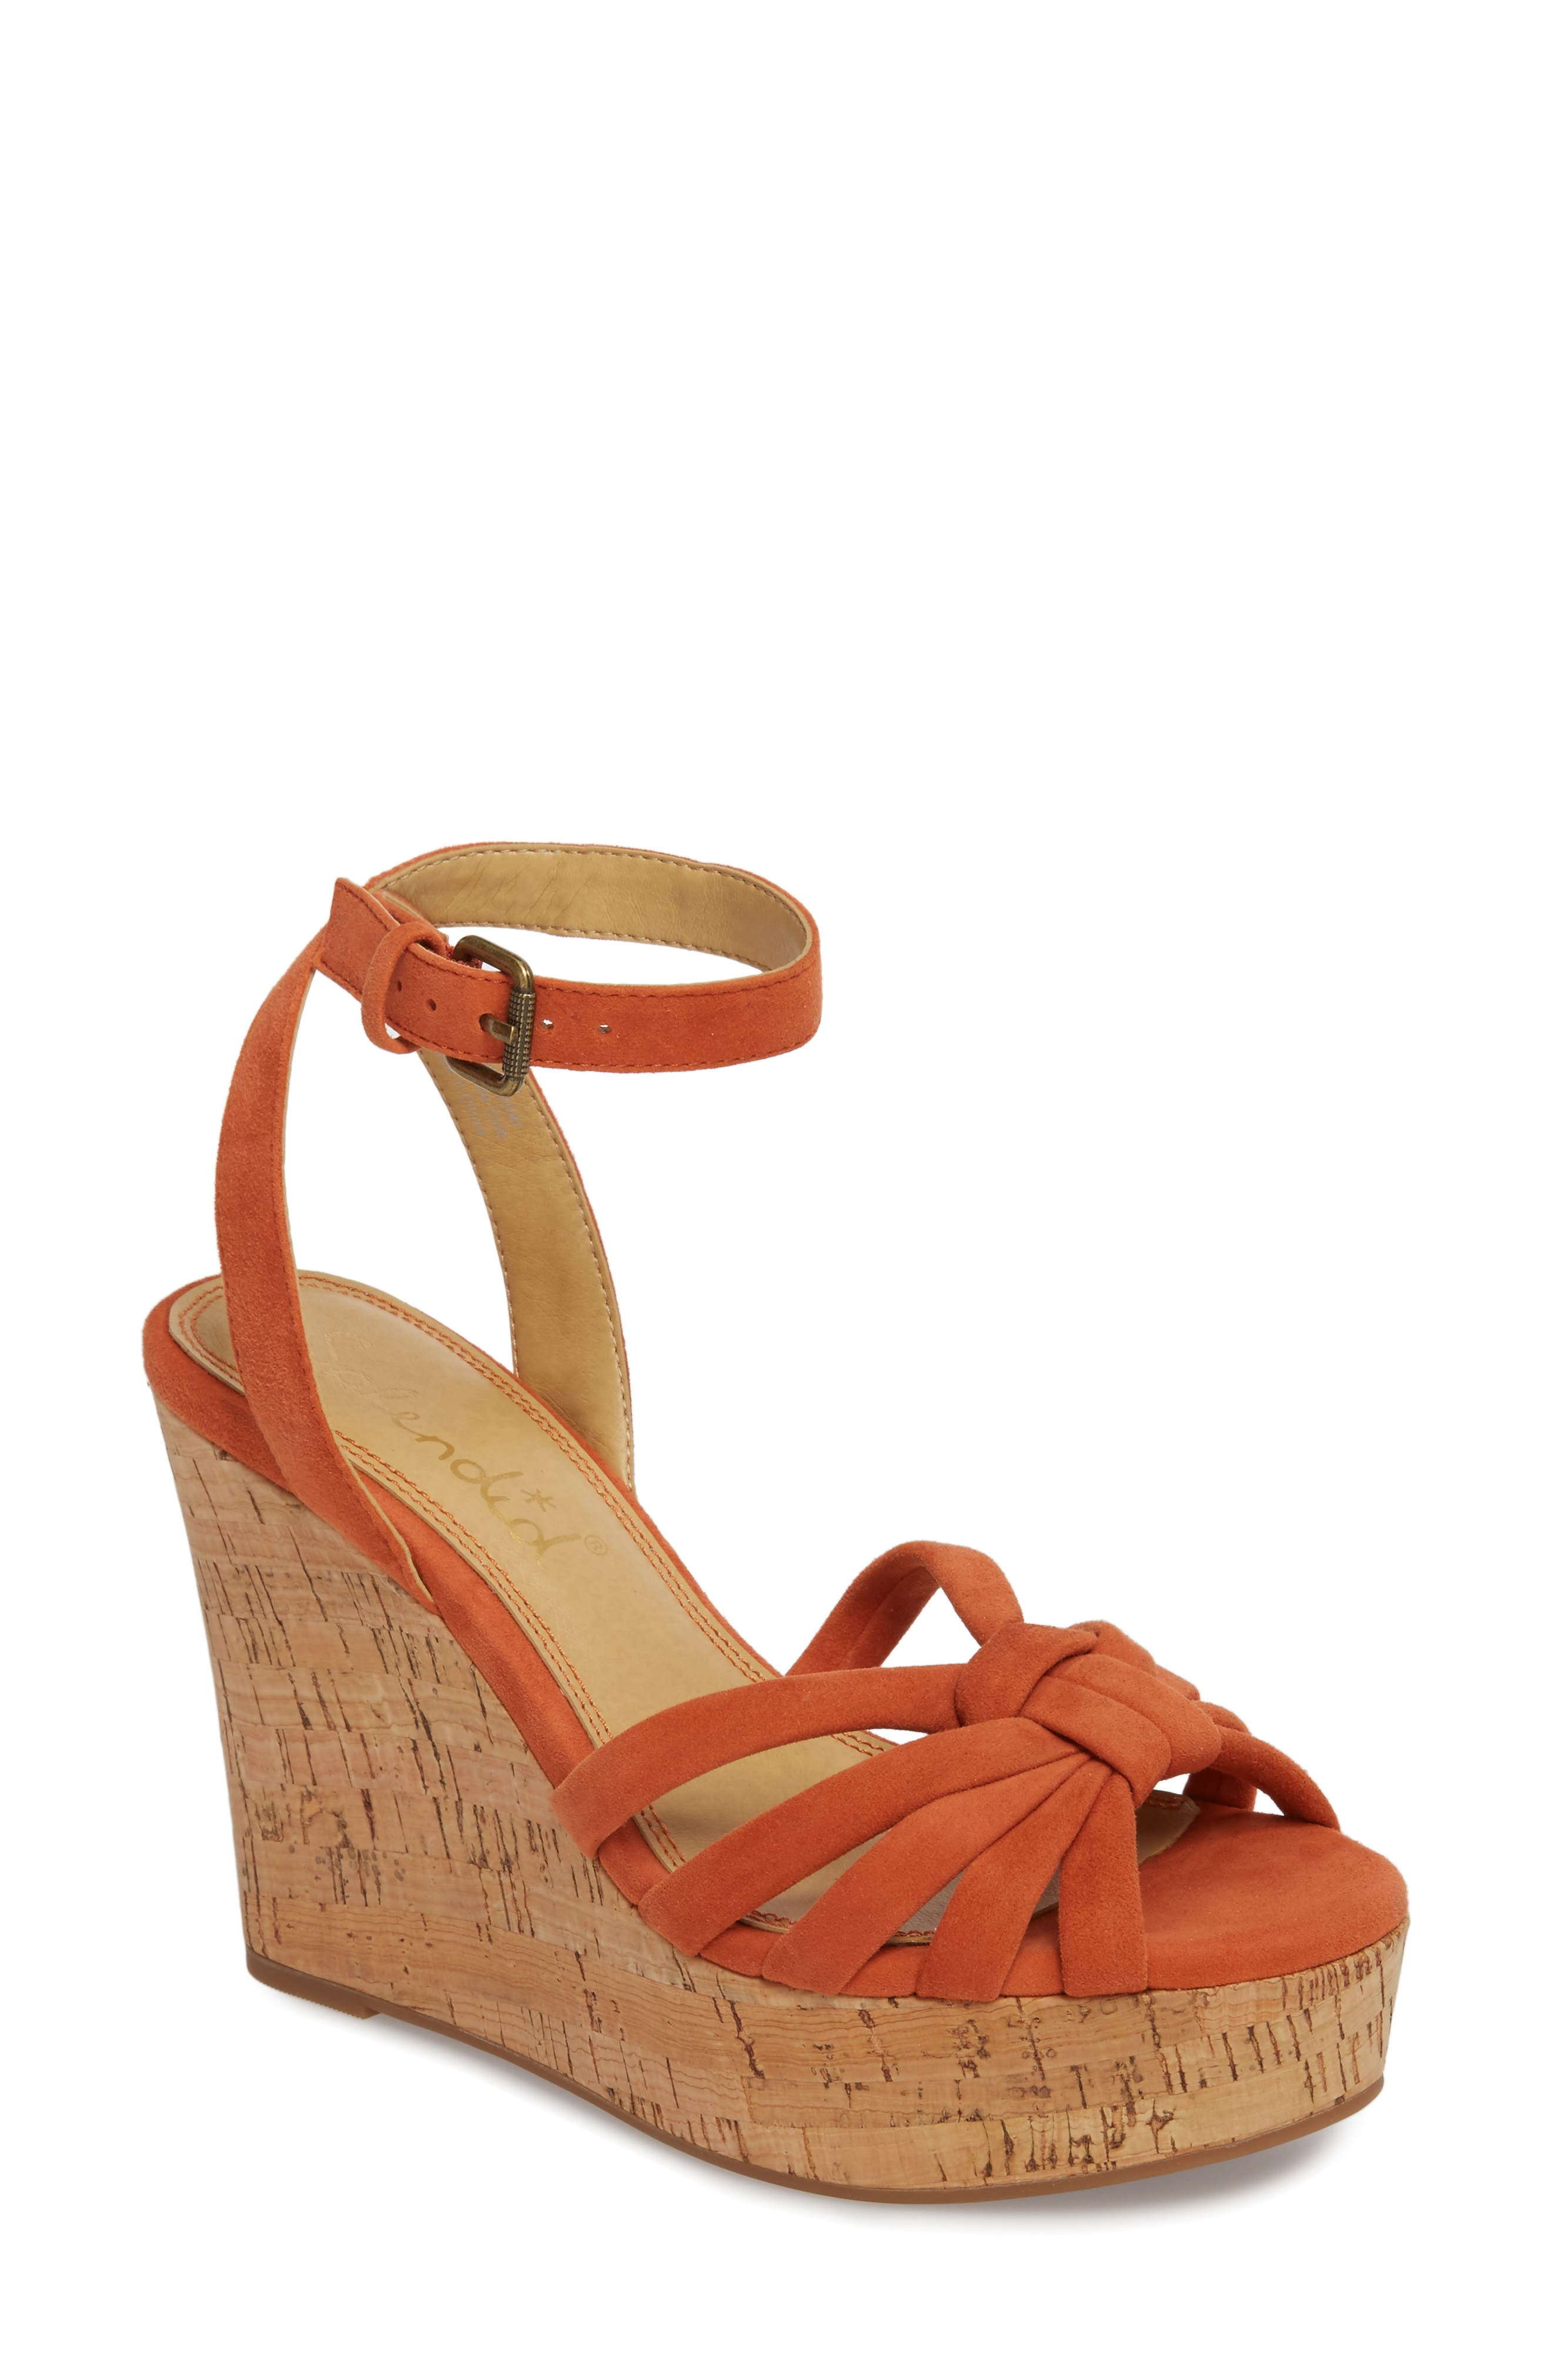 Fallon Wedge Sandal,                         Main,                         color, Coral Suede